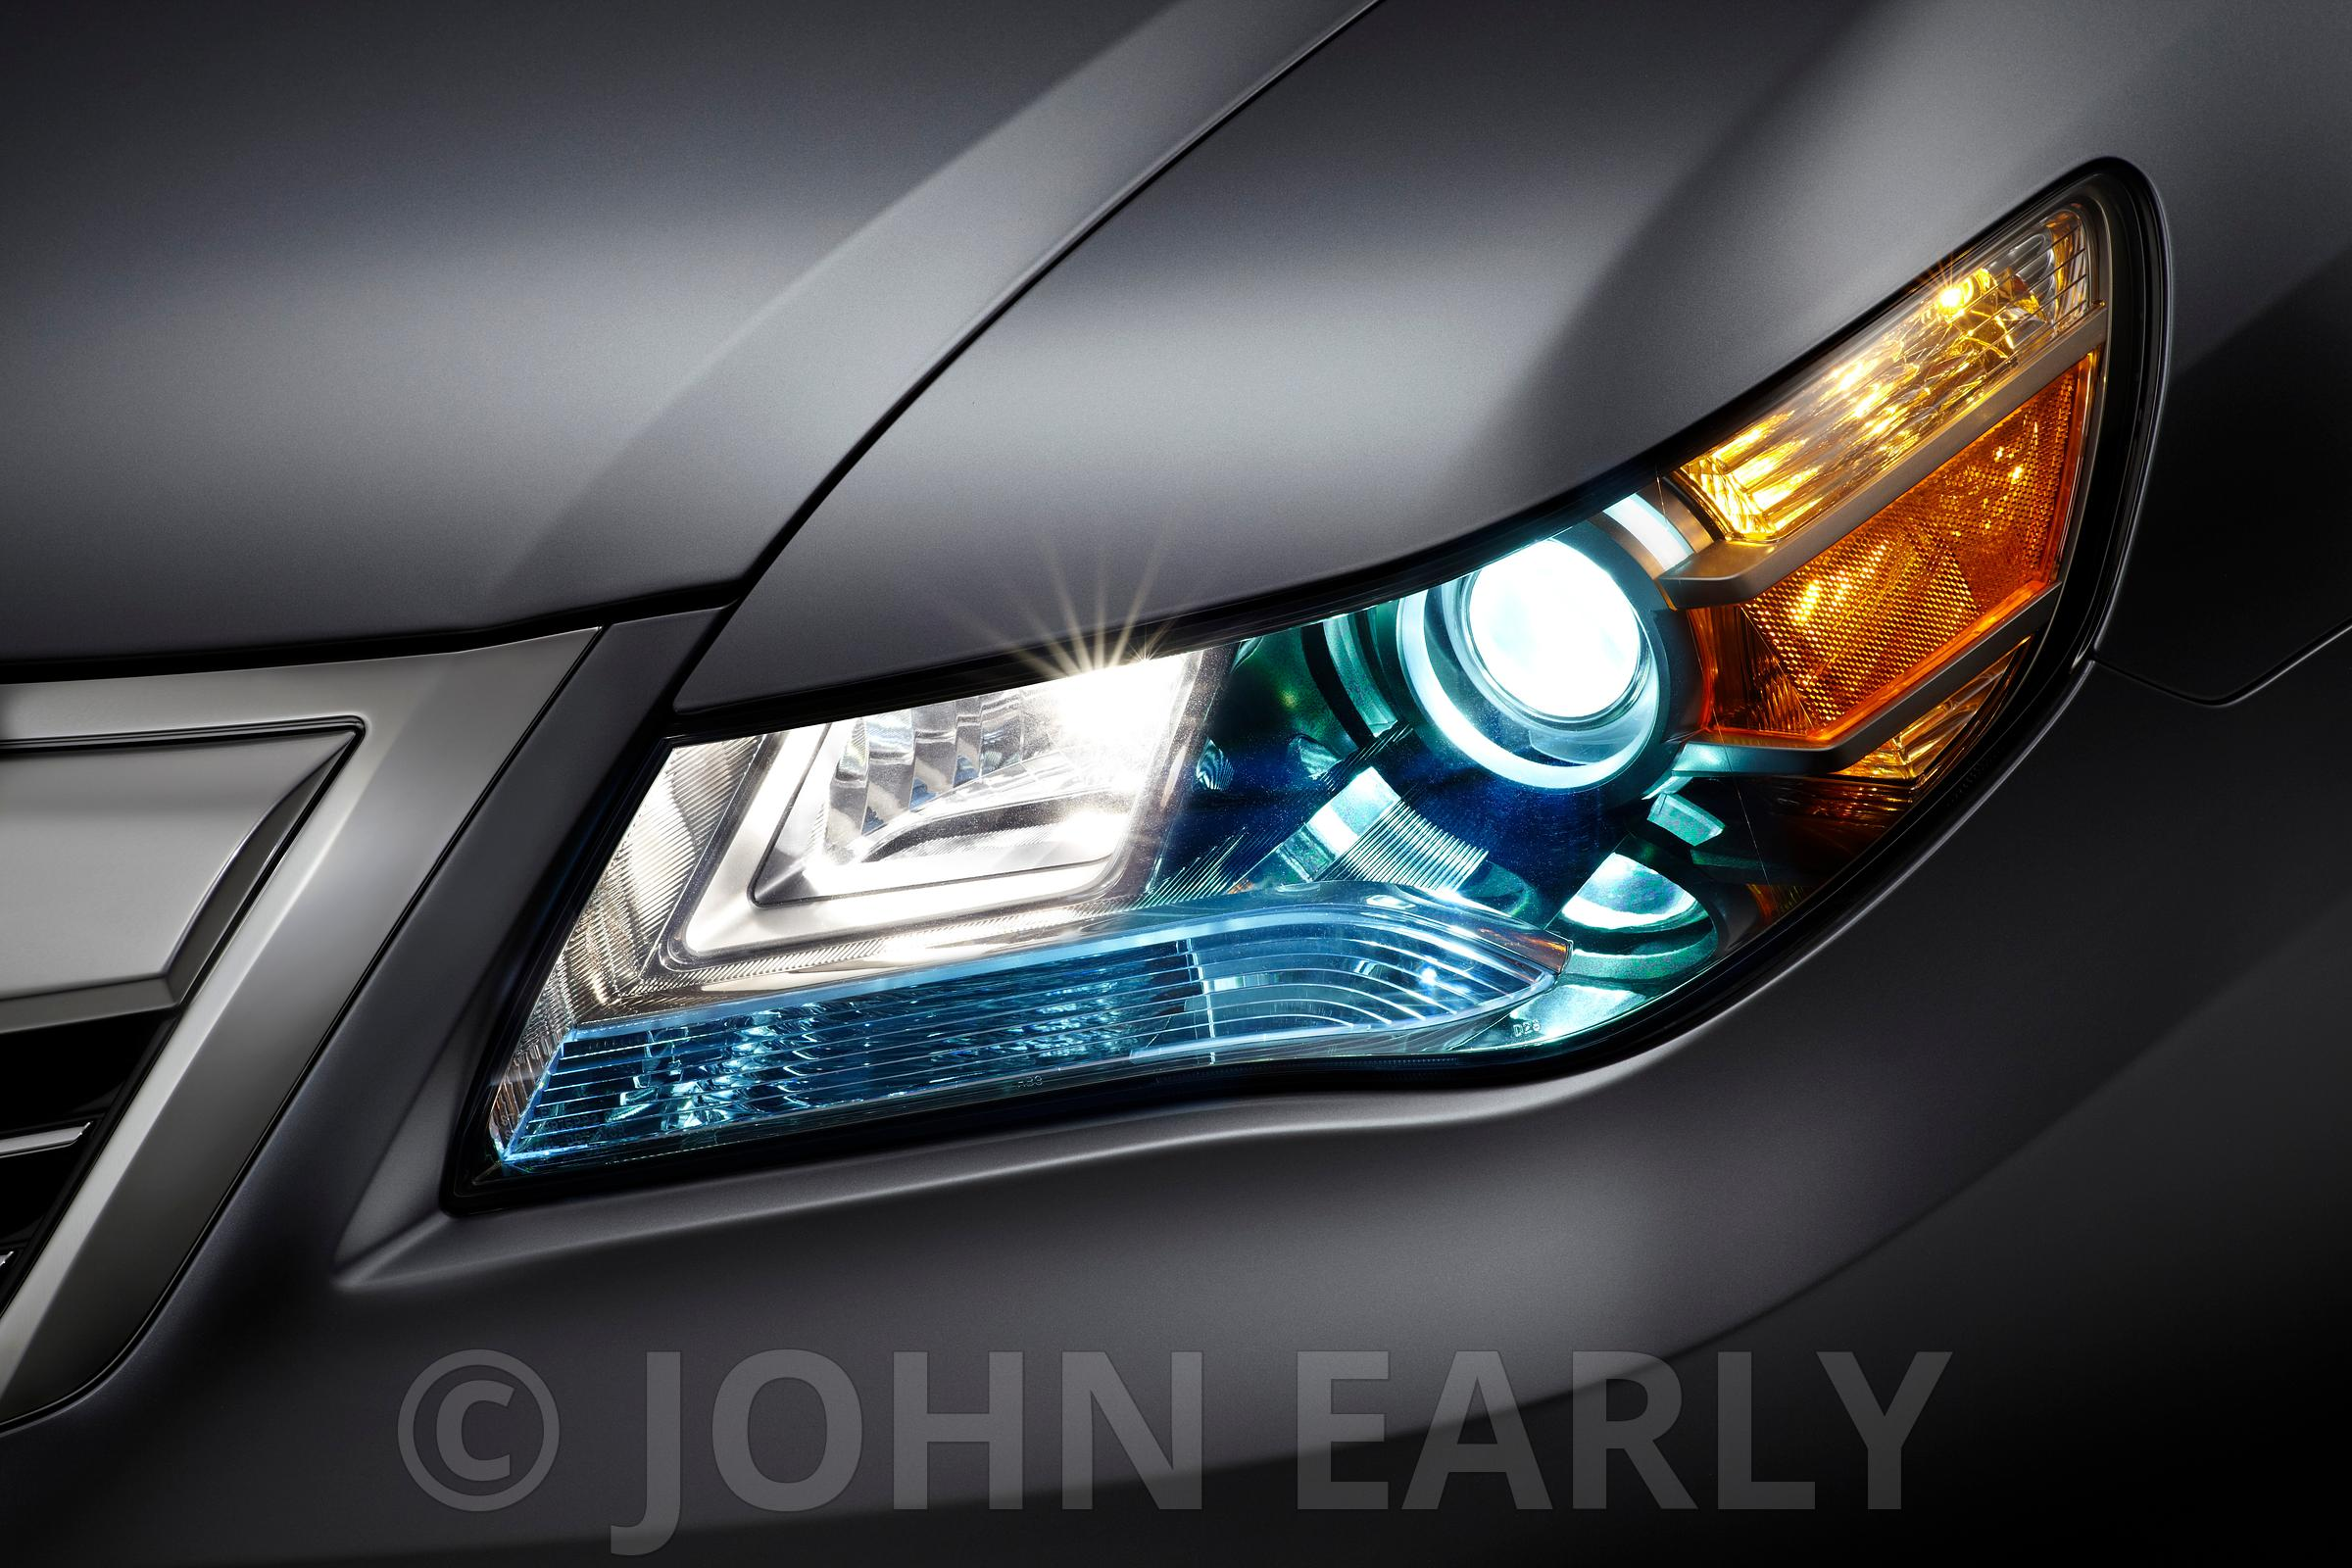 LED Headlight Close-up on Silver Vehicle